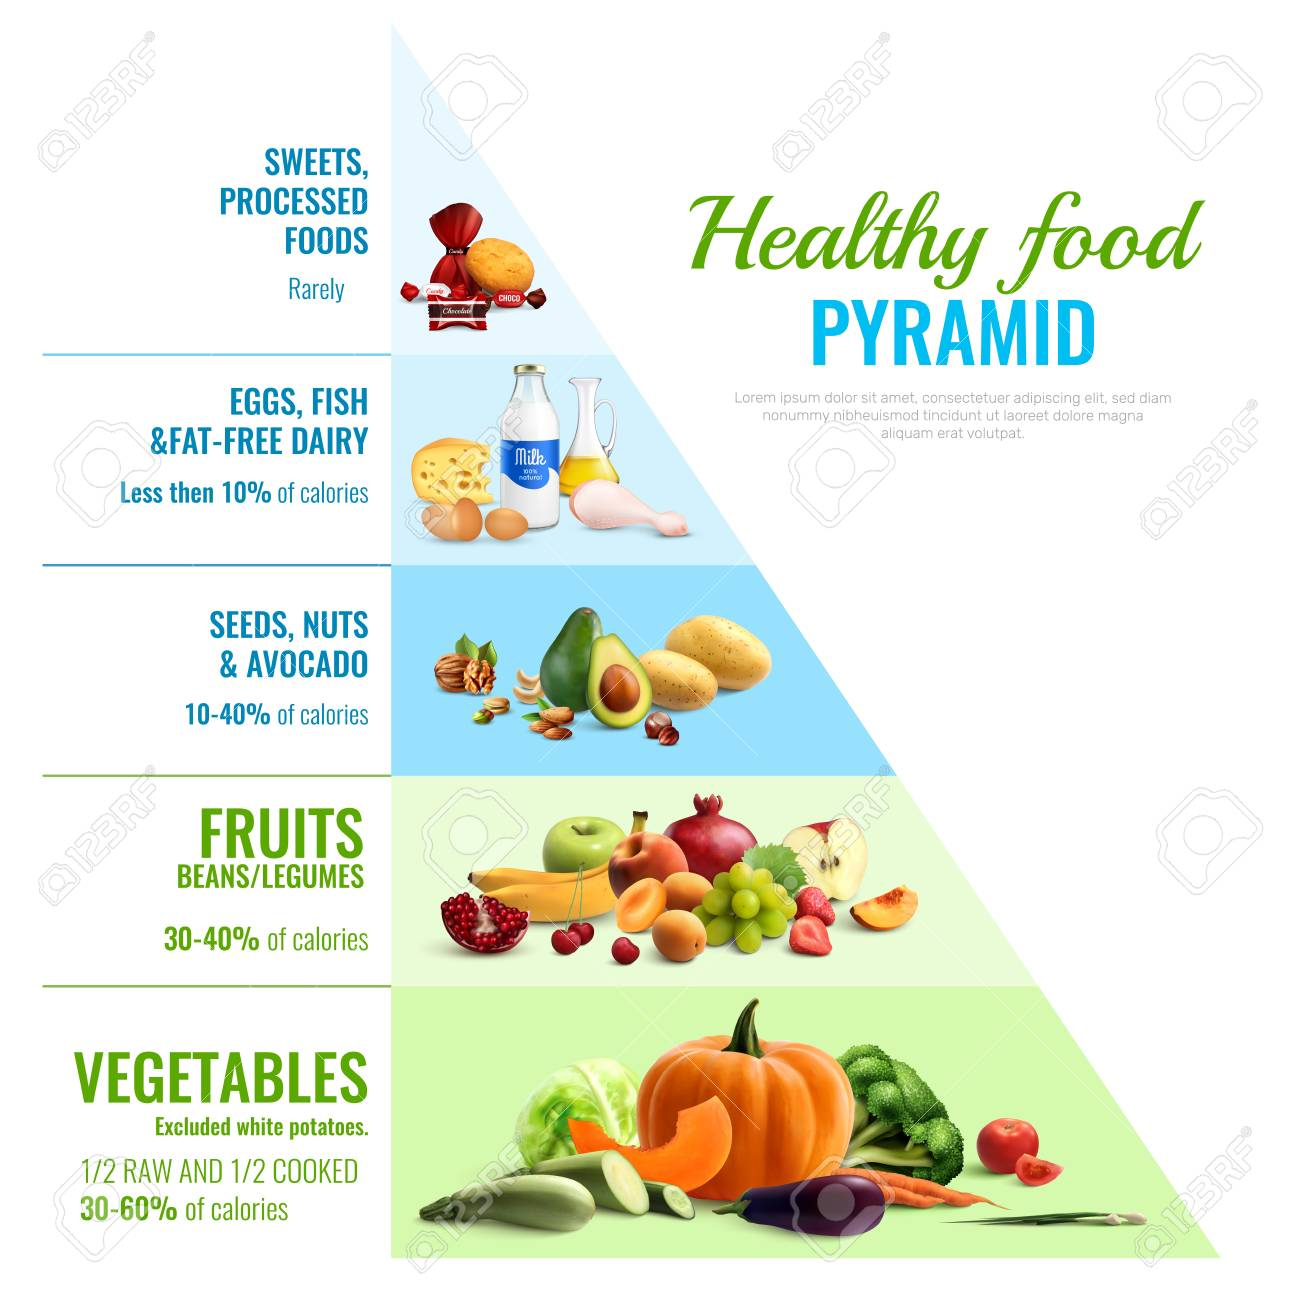 Healthy Eating Pyramid Realistic Infographic Visual Guide Poster Royalty Free Cliparts Vectors And Stock Illustration Image 113844633